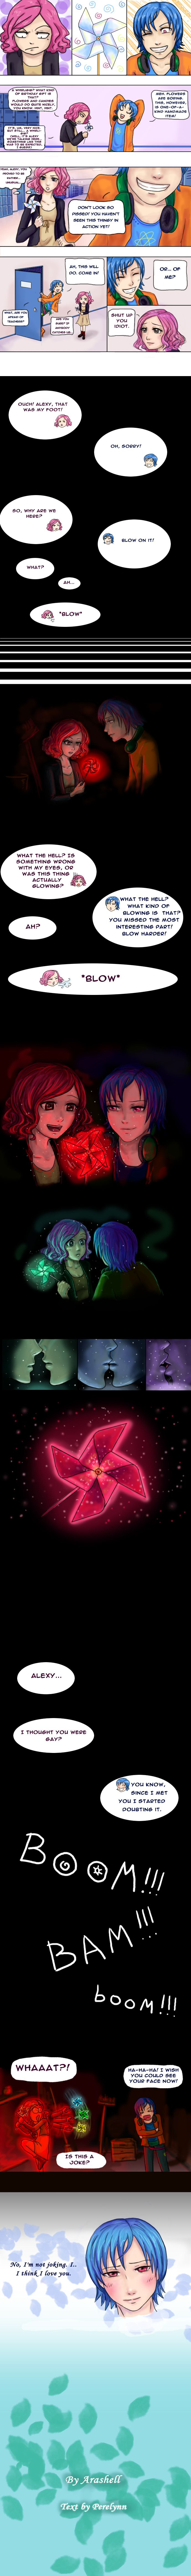 Magic wand (2) by Arashell on DeviantArt Yes please i want to live this too QwQ